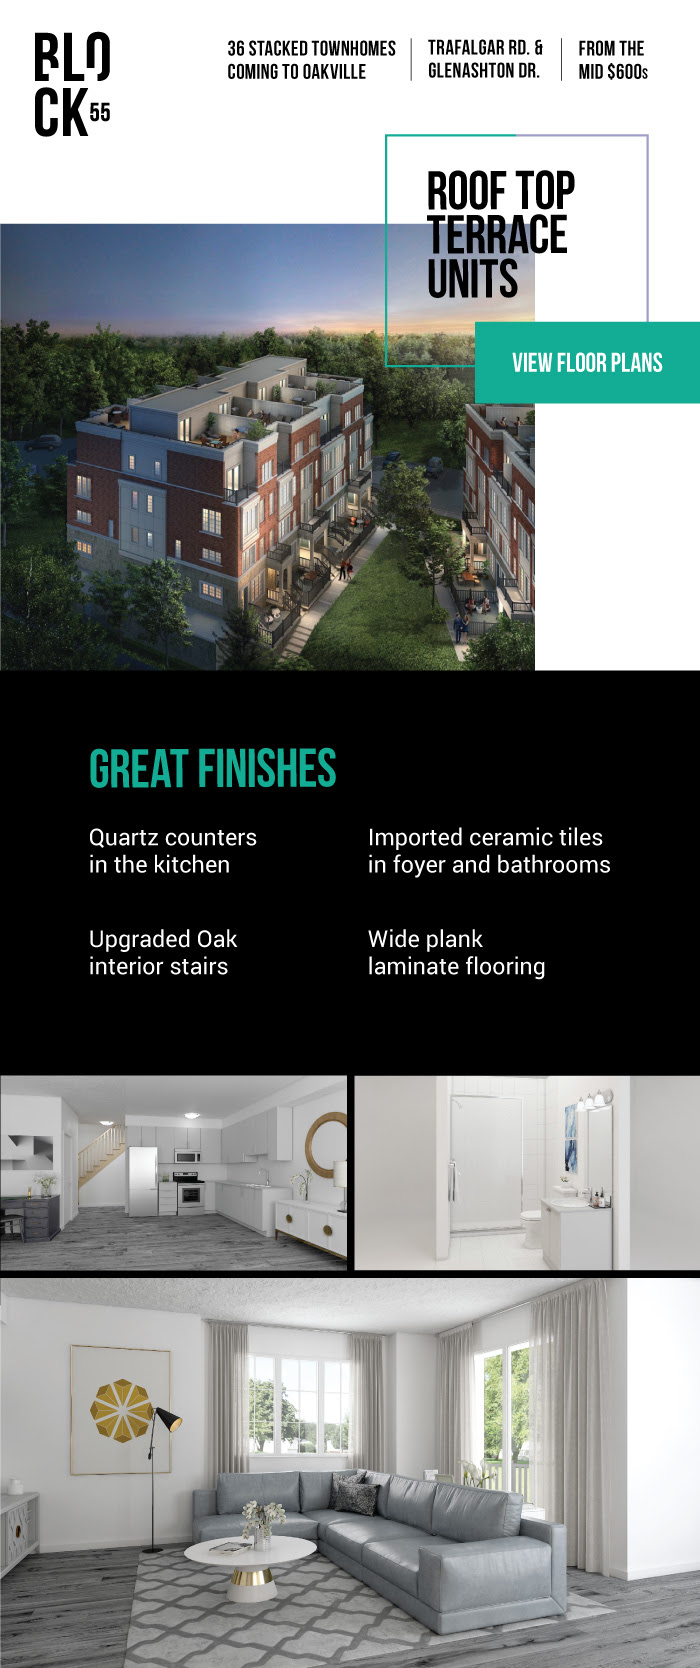 Oakville Townhomes Low Builder Price Move in ready! SOLD OUT!